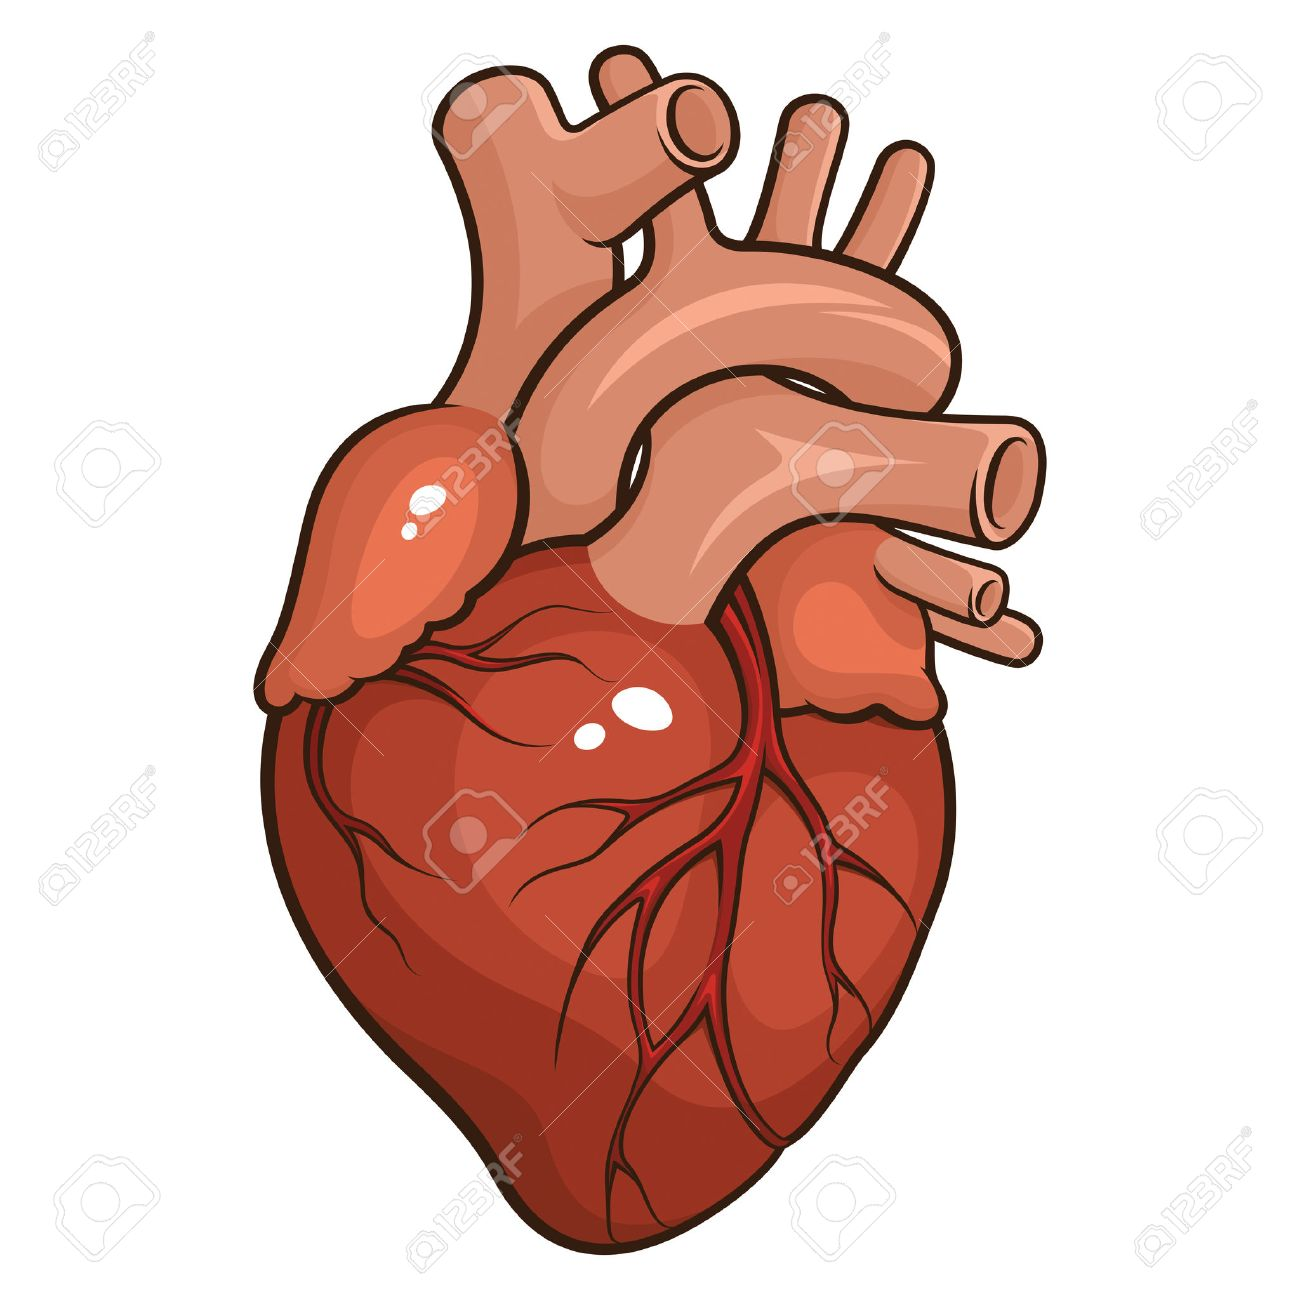 Human Heart Clipart at GetDrawings | Free download